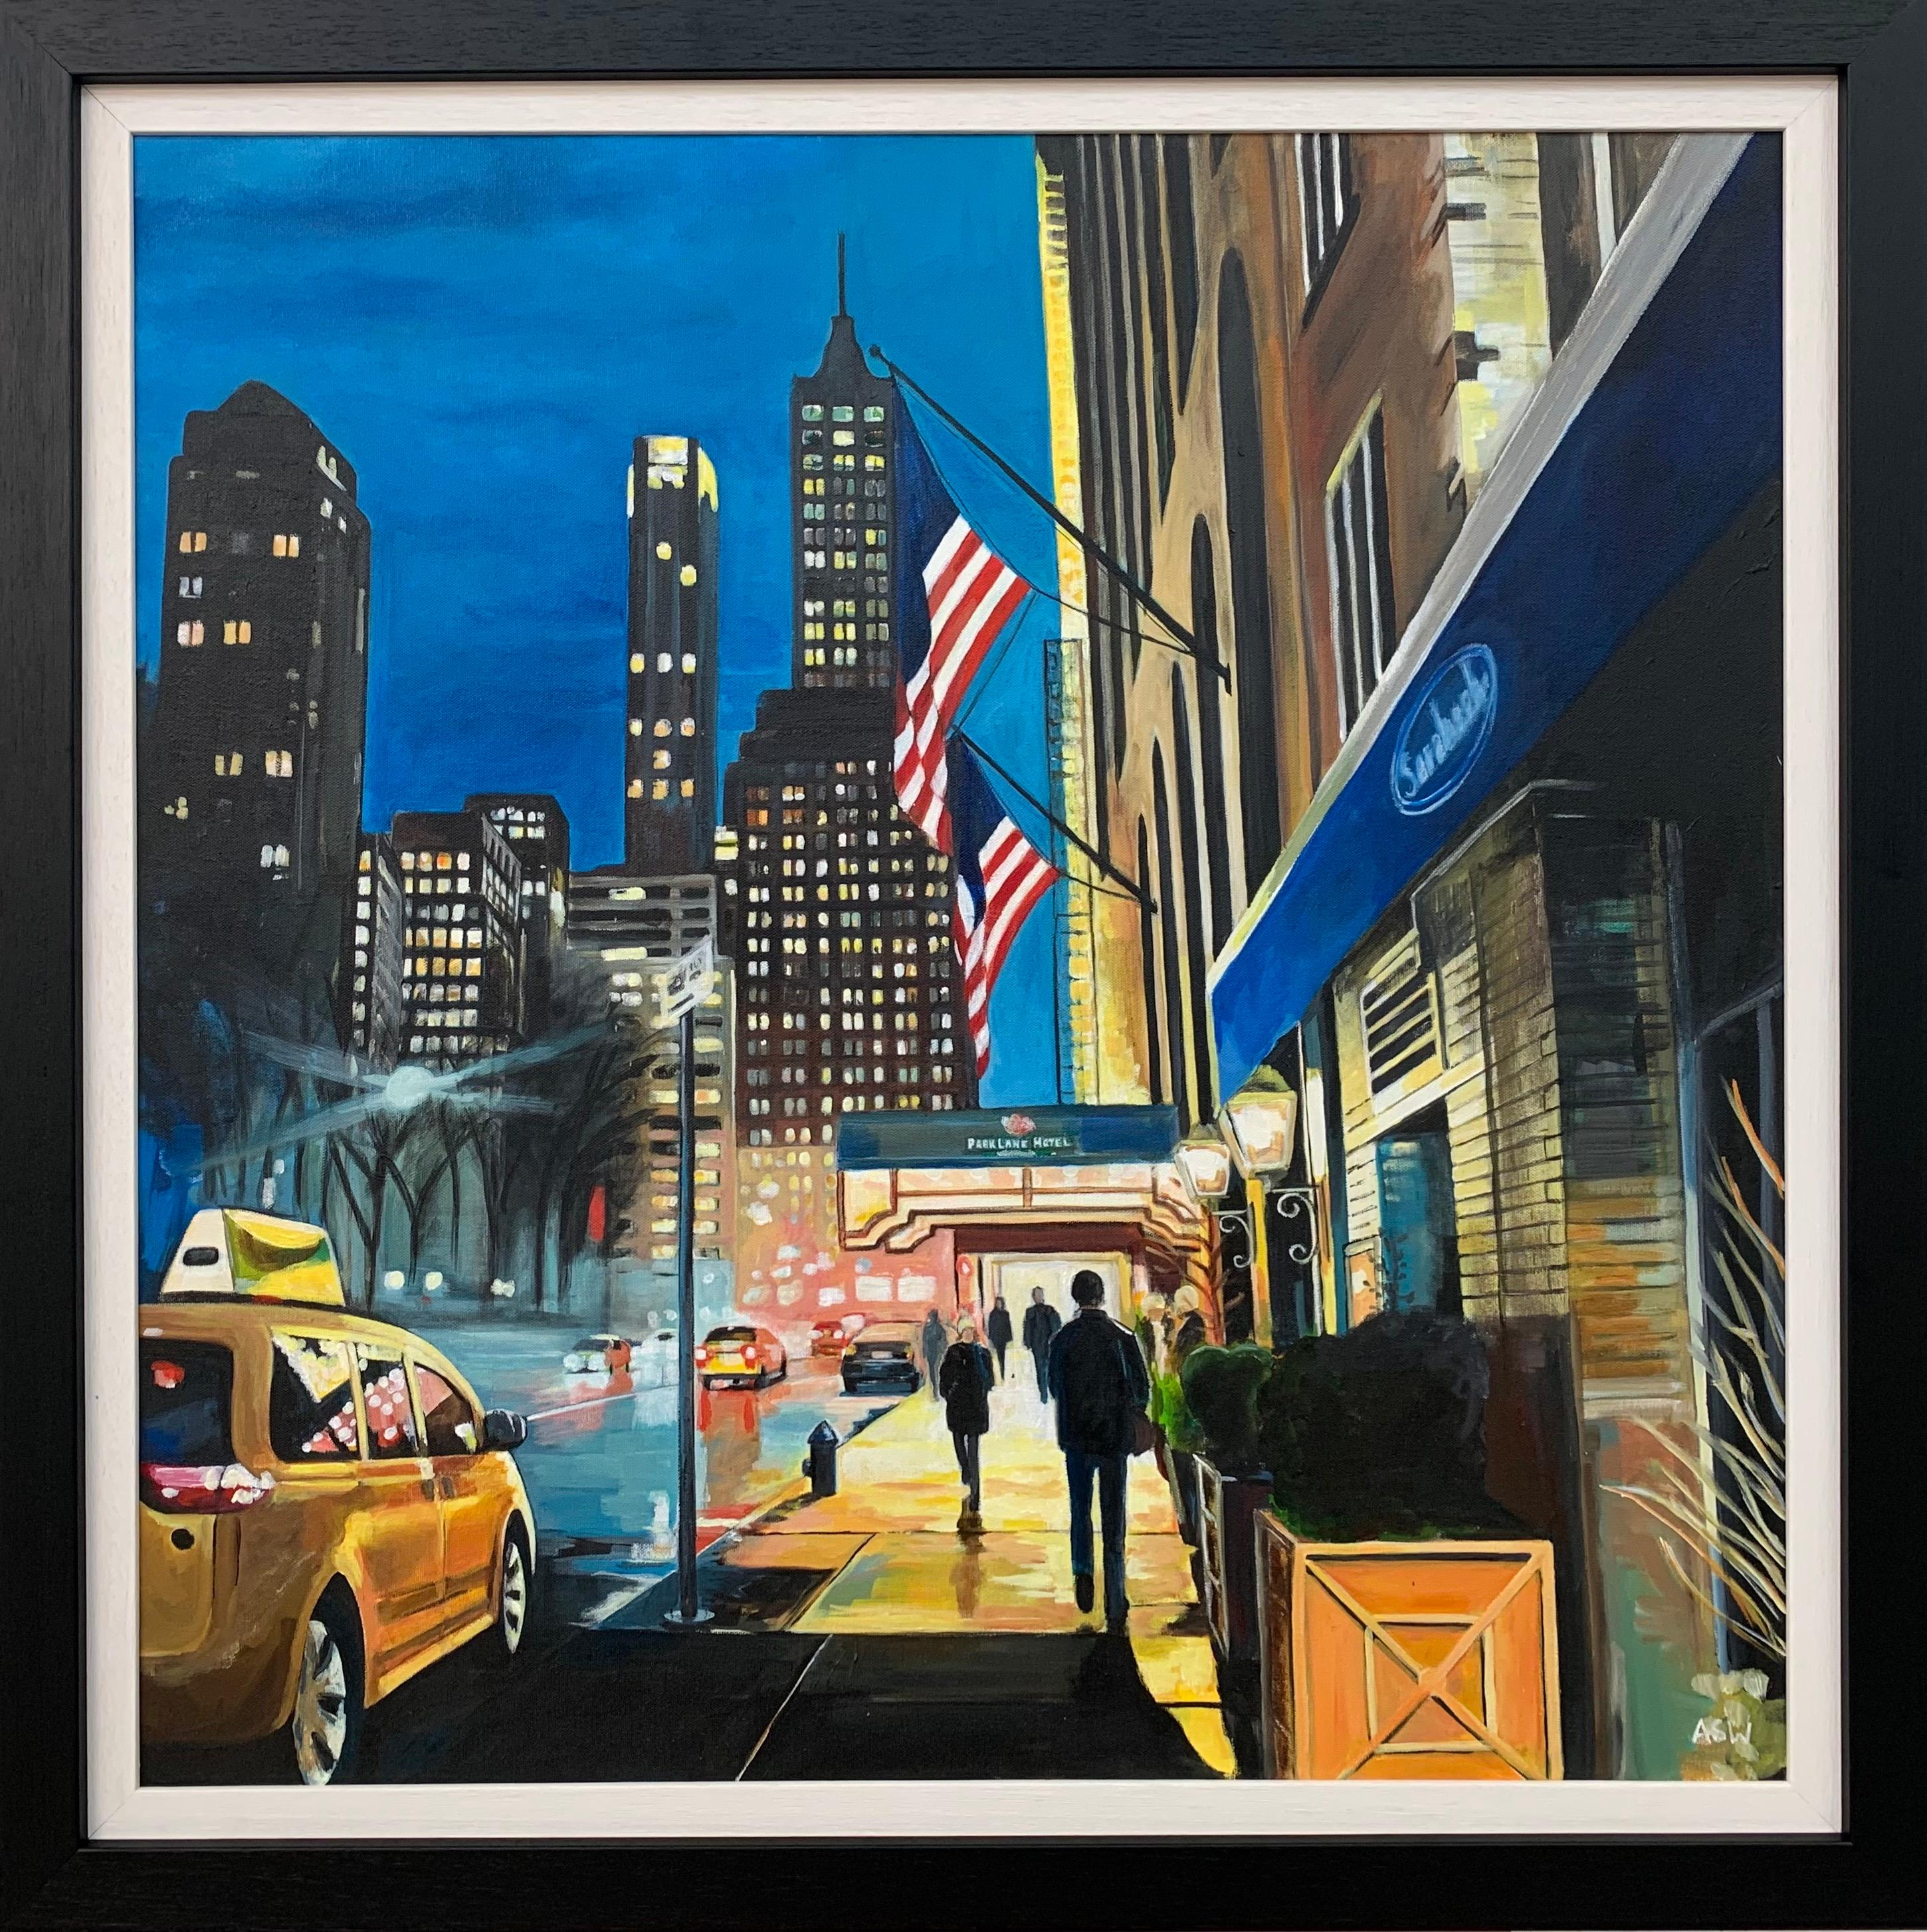 Park Lane Hotel Central Park New York City by British Contemporary Artist